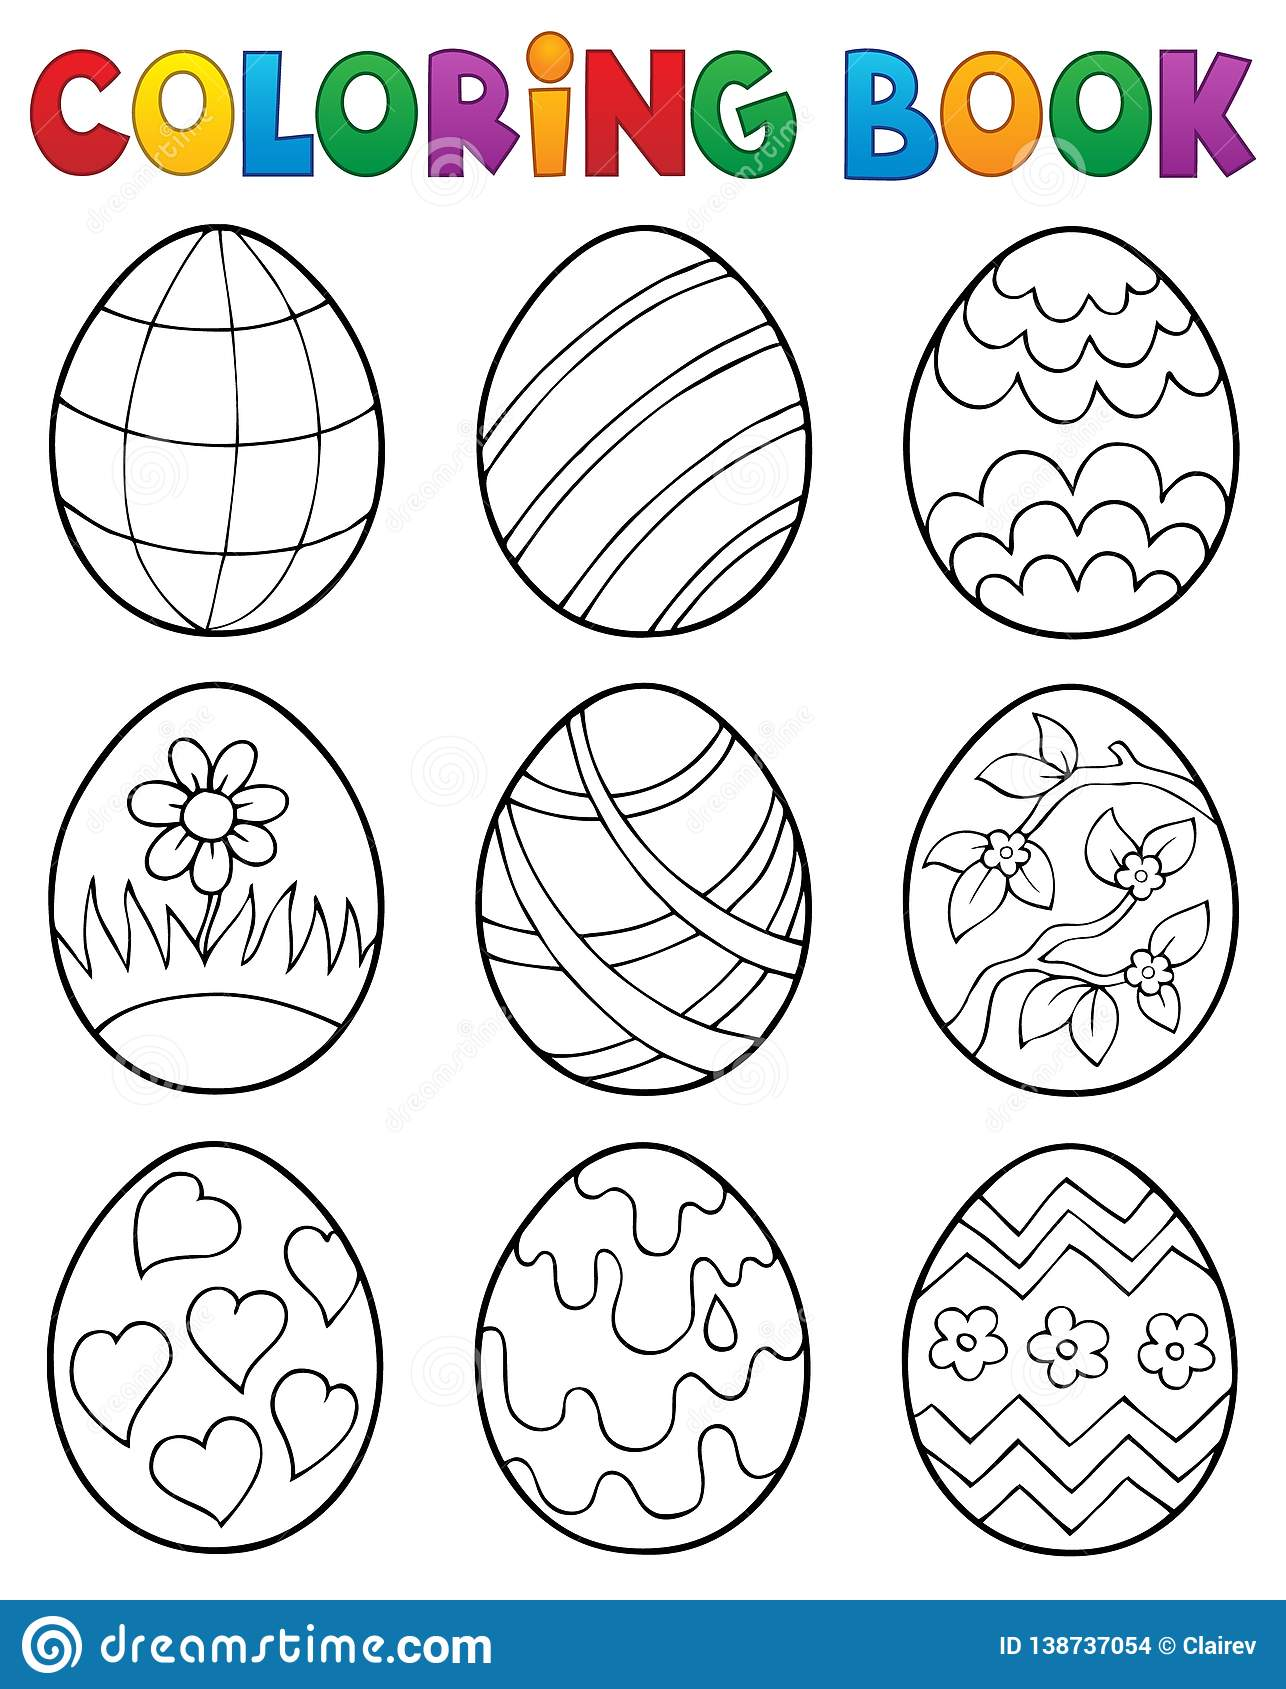 Coloring Book Easter Eggs Theme 4 Stock Vector - Illustration of ...